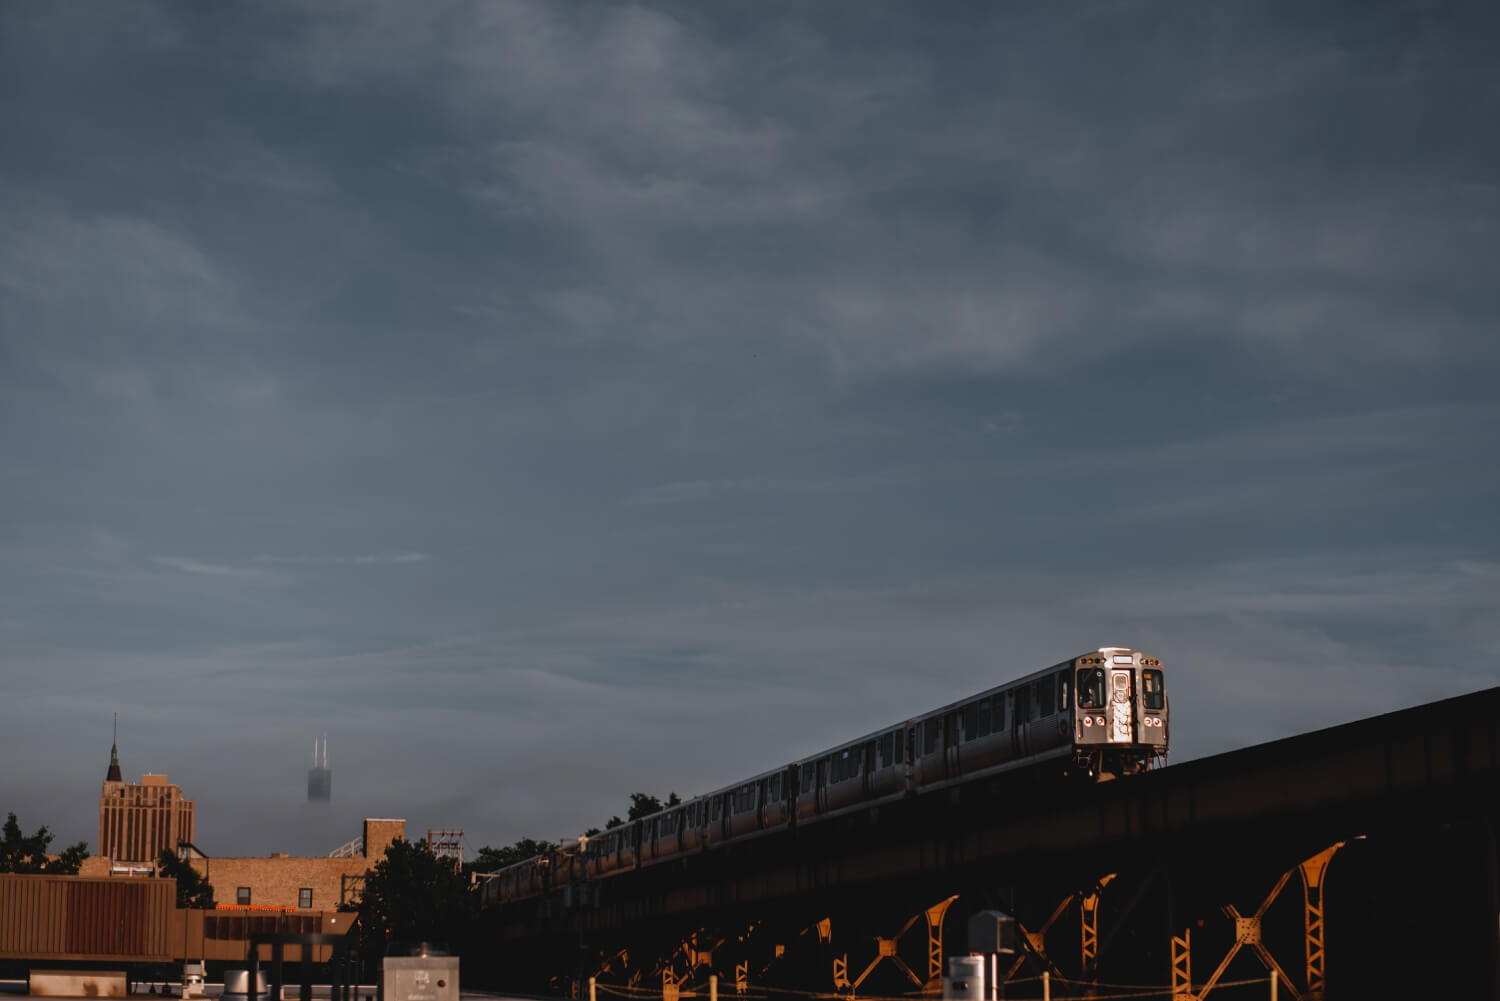 Logan Square Chicago Engagement Photographer, photo fo the L train with city skyline in the background, Blue line